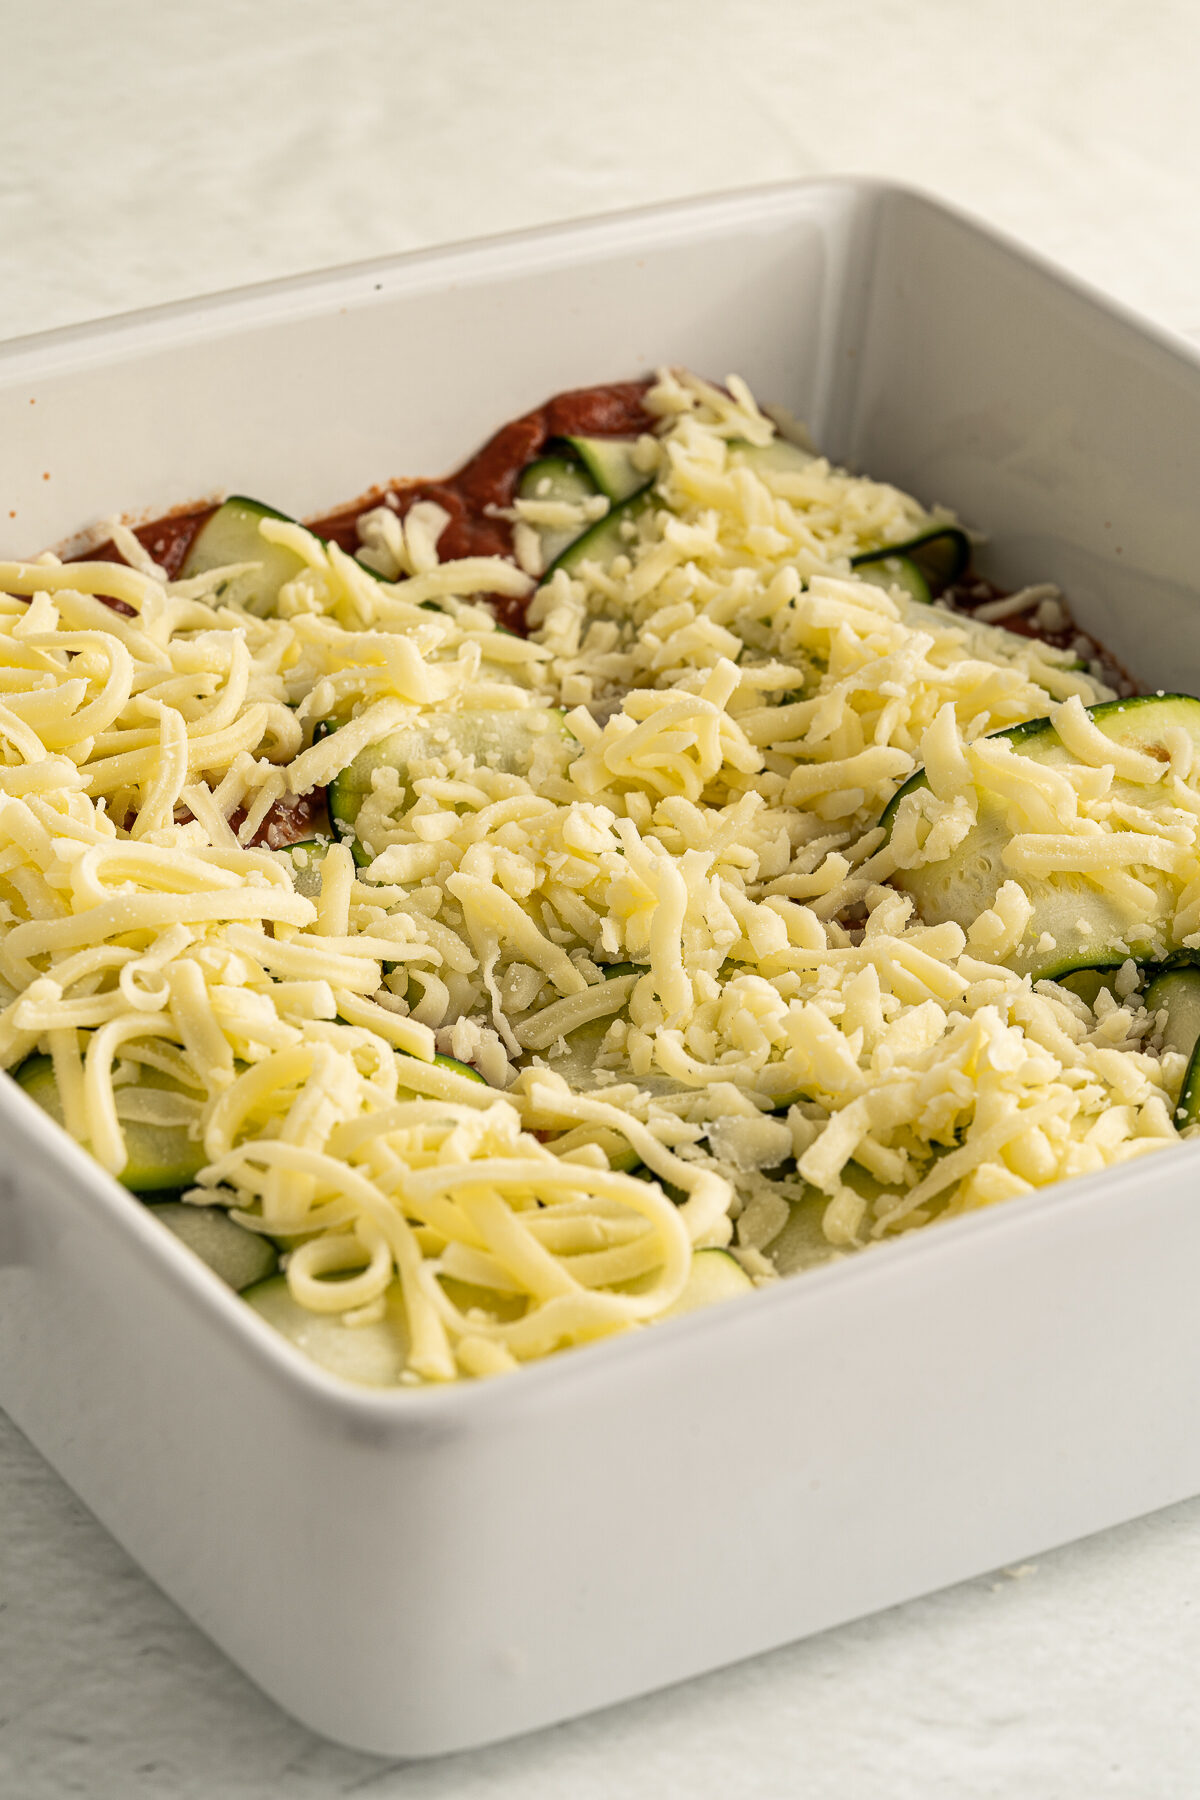 Shredded cheese covering the zucchini bundles